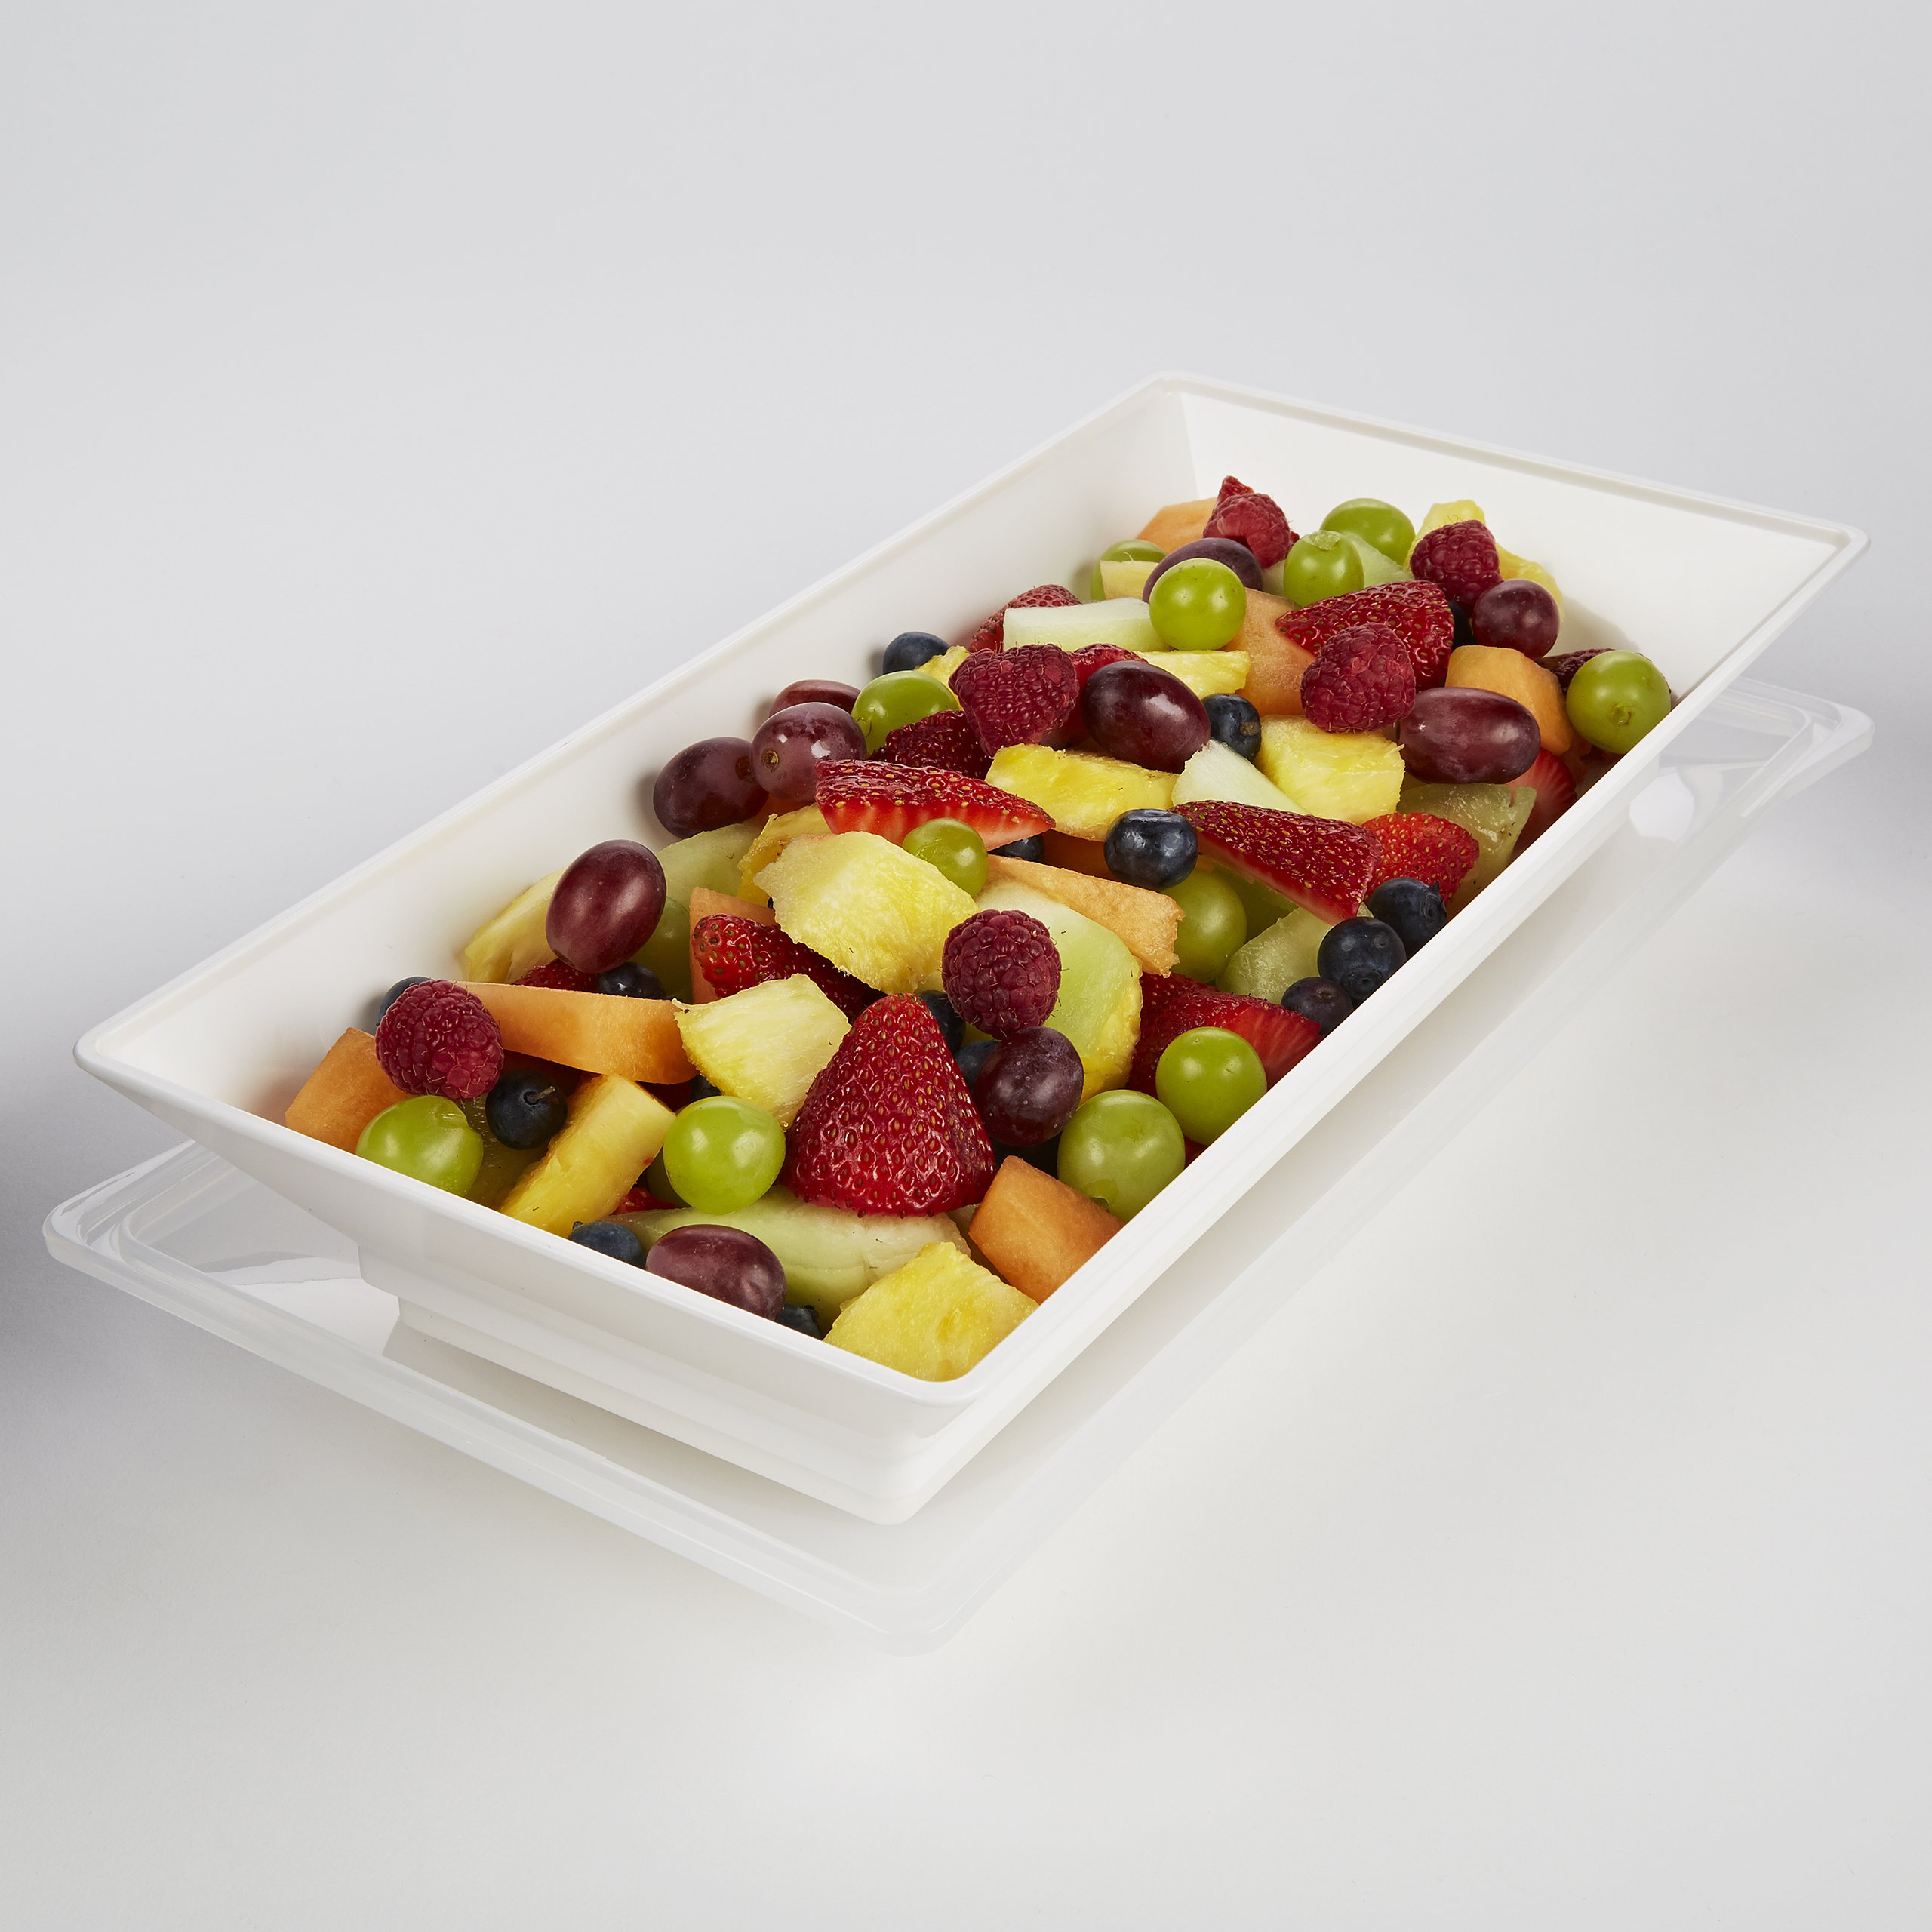 Fit & Fresh Chilled Serving Platter, 56-ounce Capacity Freezable Food Tray with Lid , BPA-Free, Freezer/Microwave Safe, Perfect for Party, Gathering, Food Storage by Fit & Fresh (Image #5)